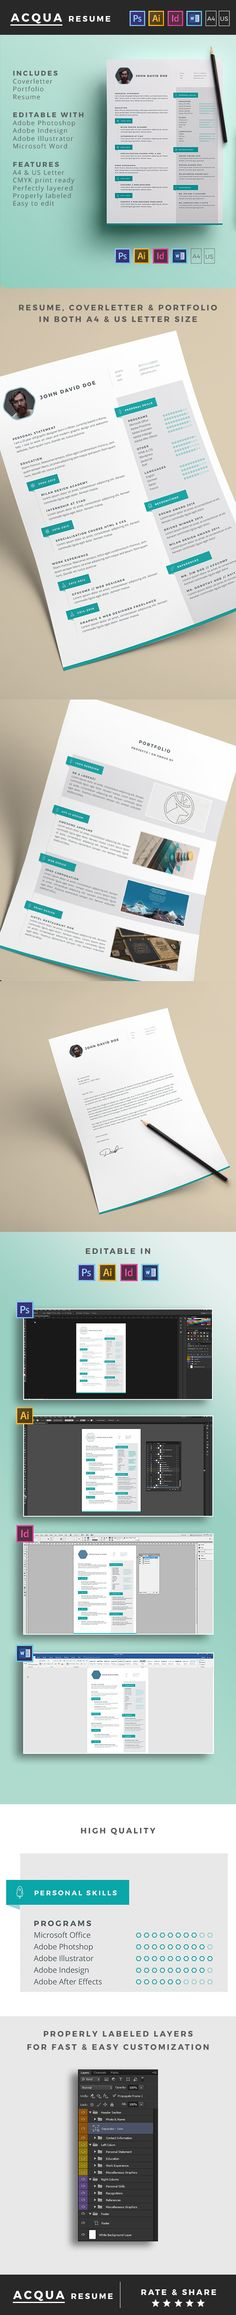 Amazing clean resume design.  Available in both DIN A4 and US Letter format. Includes files for Adobe Photoshop, Adobe Illustrator, Adobe Indesign and Microsoft Word.   Download it here: http://graphicriver.net/item/acqua-resume/14781198?ref=TwoBrains